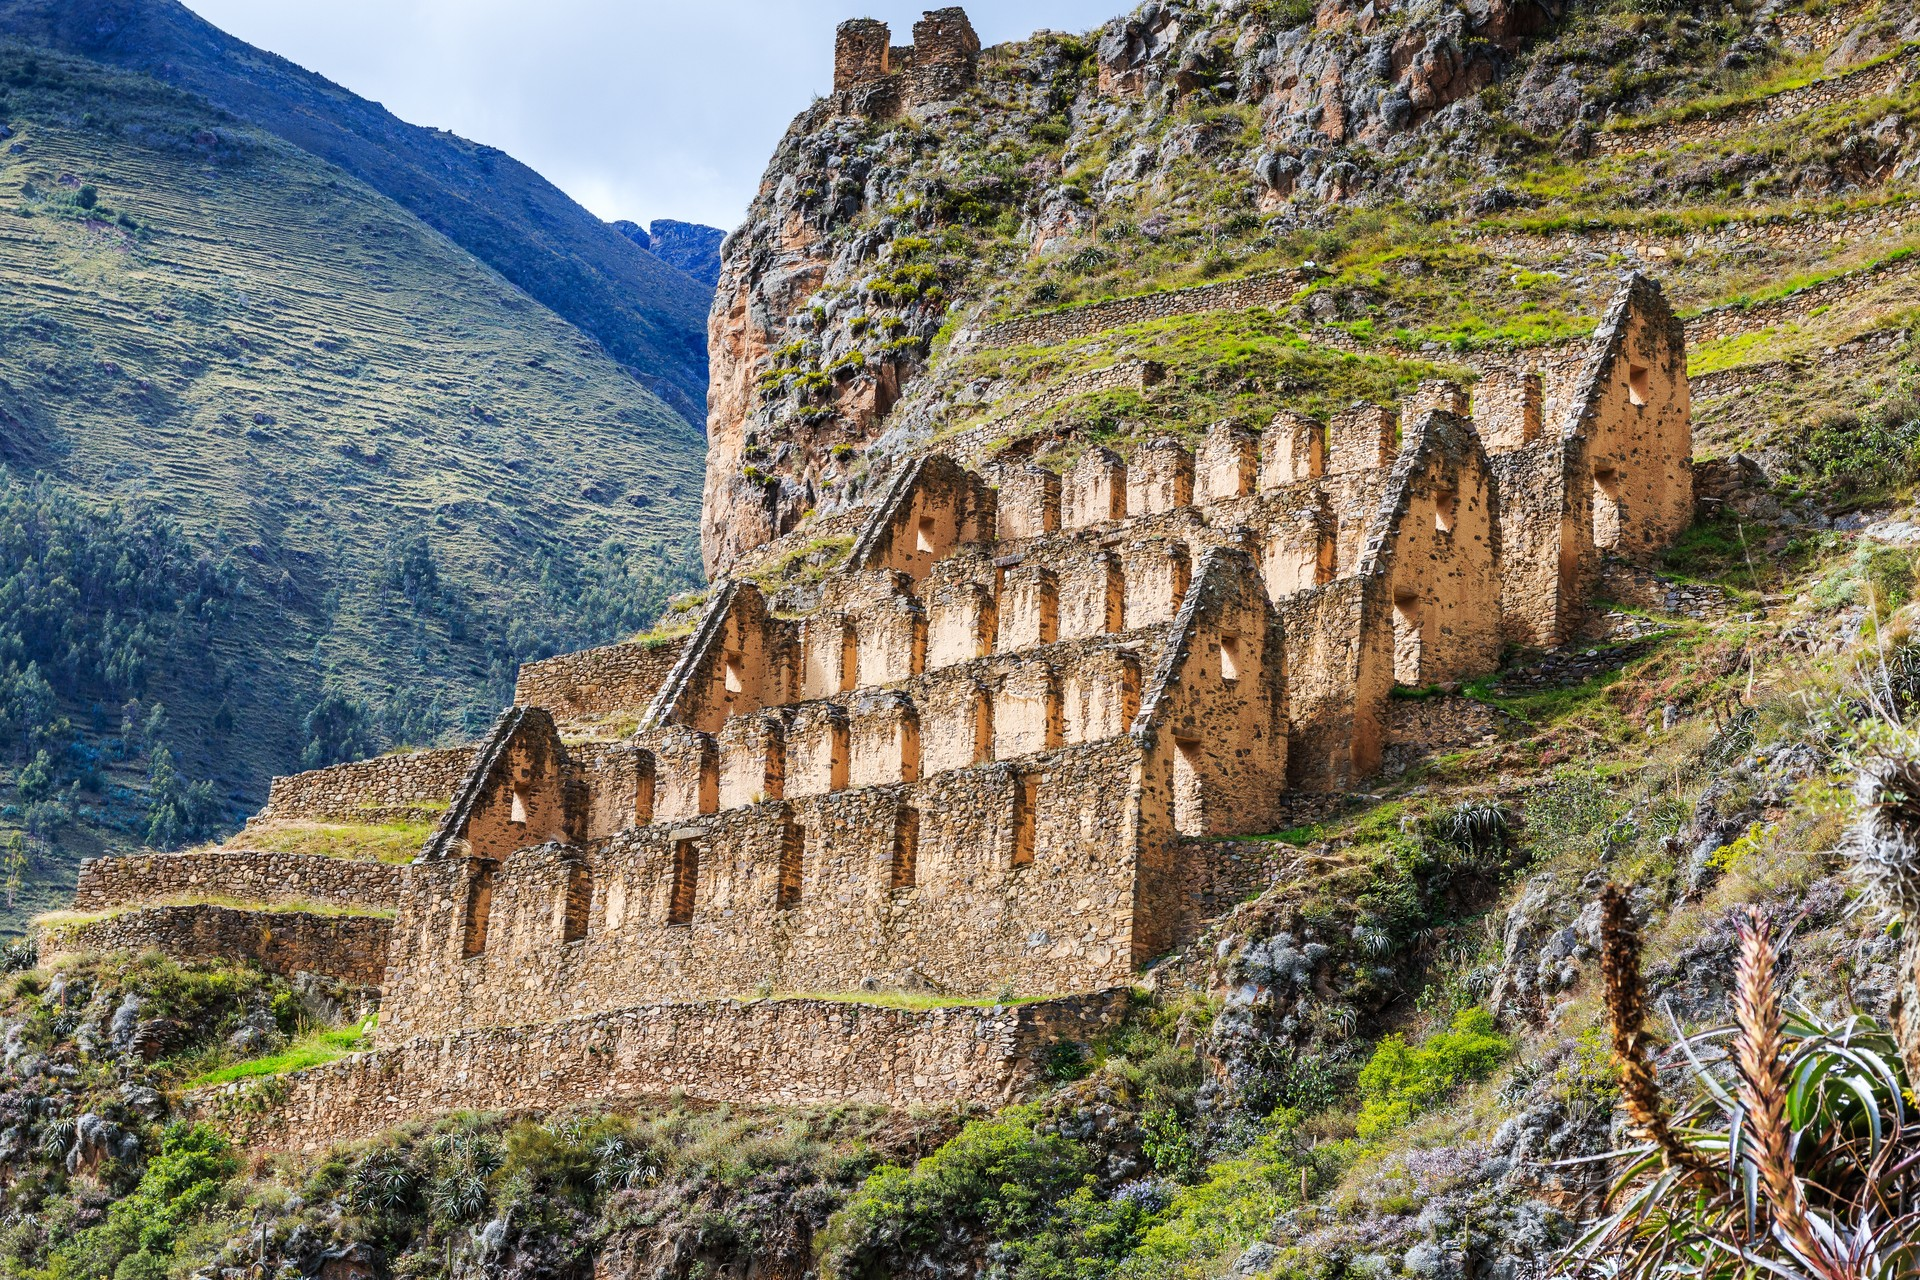 The Inca ruins outside of Ollantaytambo in Peru